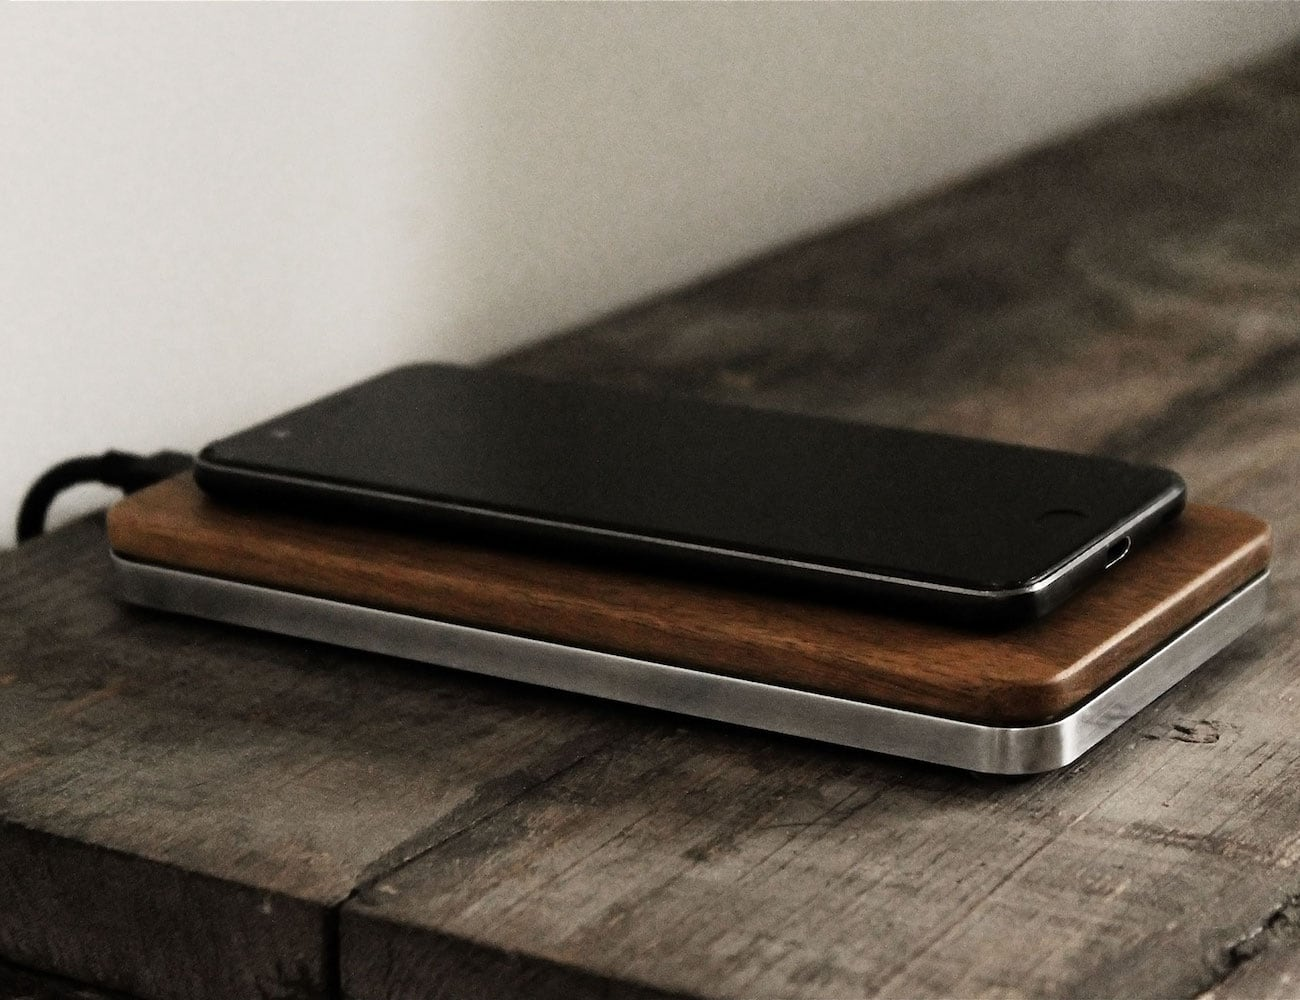 THE BRICK Wireless Fast Charger